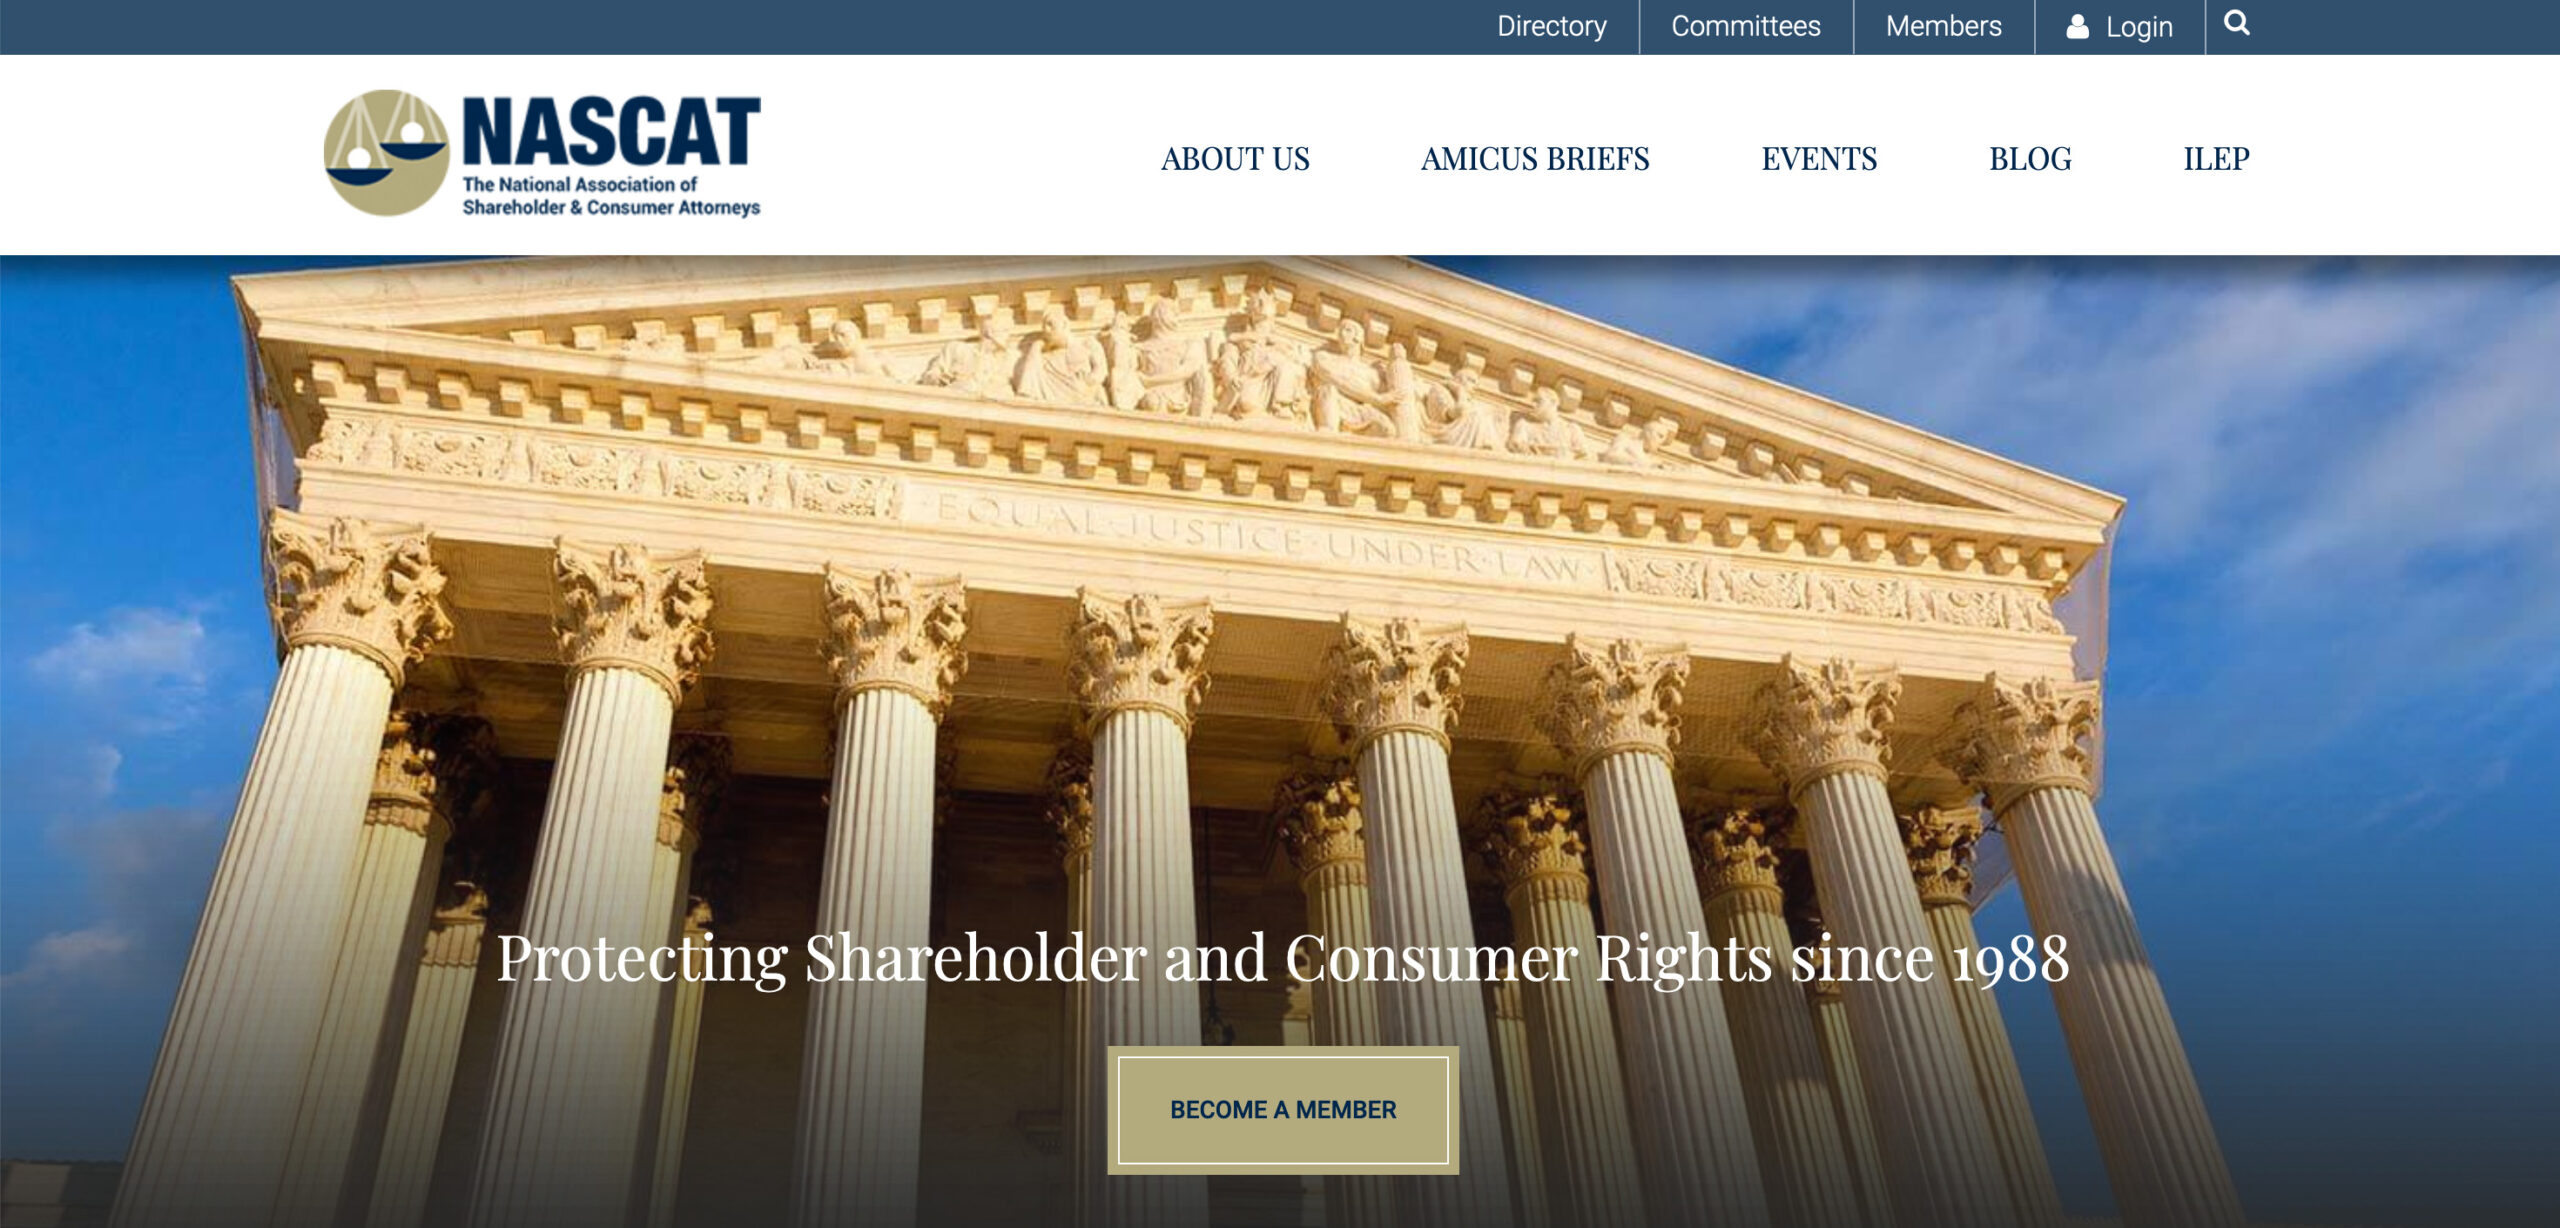 Image of the NASCAT Website home page.